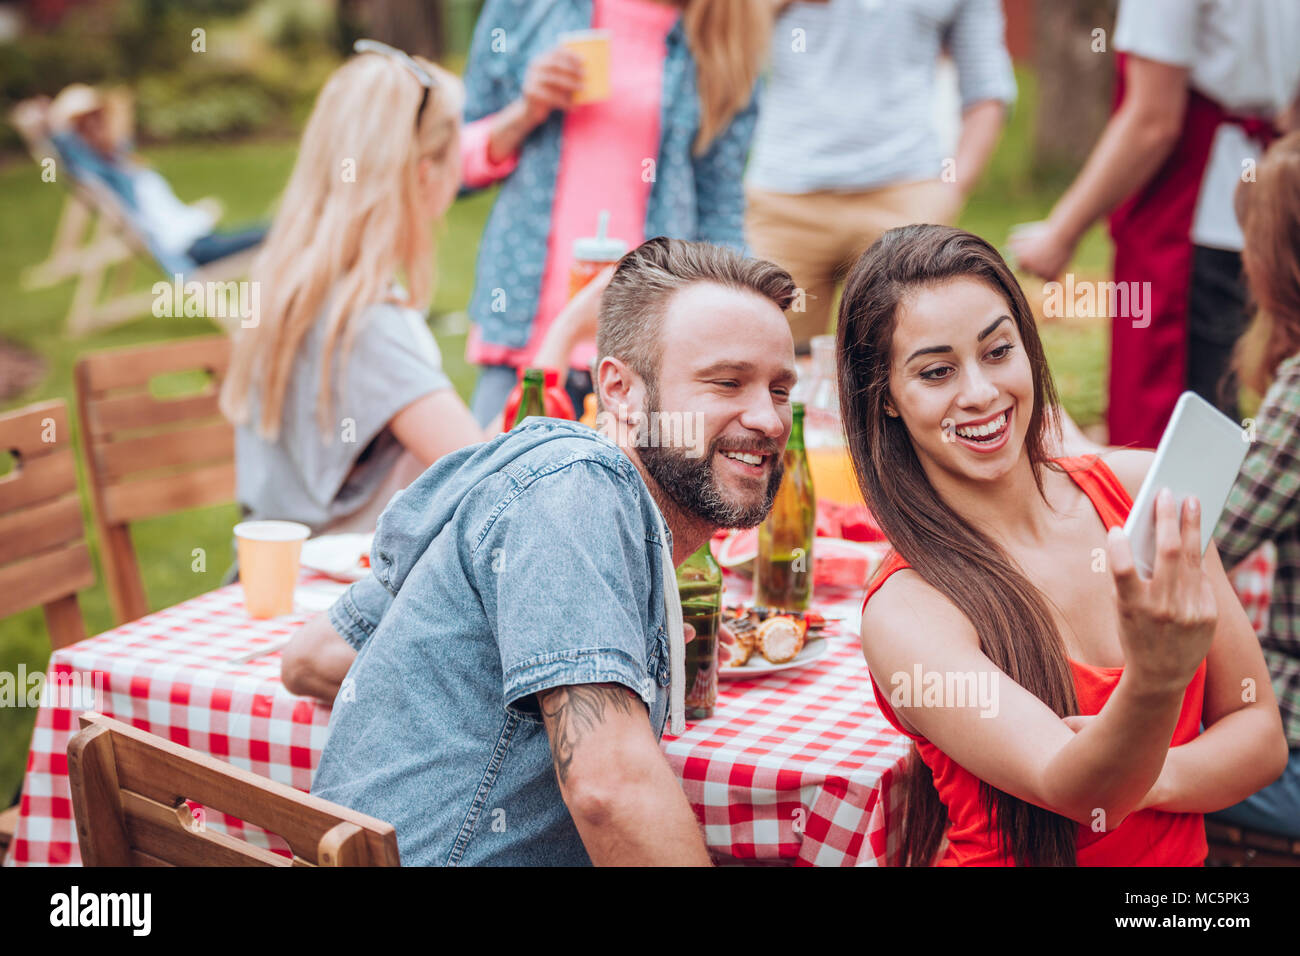 Smiling woman taking photo with a friend during a birthday party in the garden - Stock Image